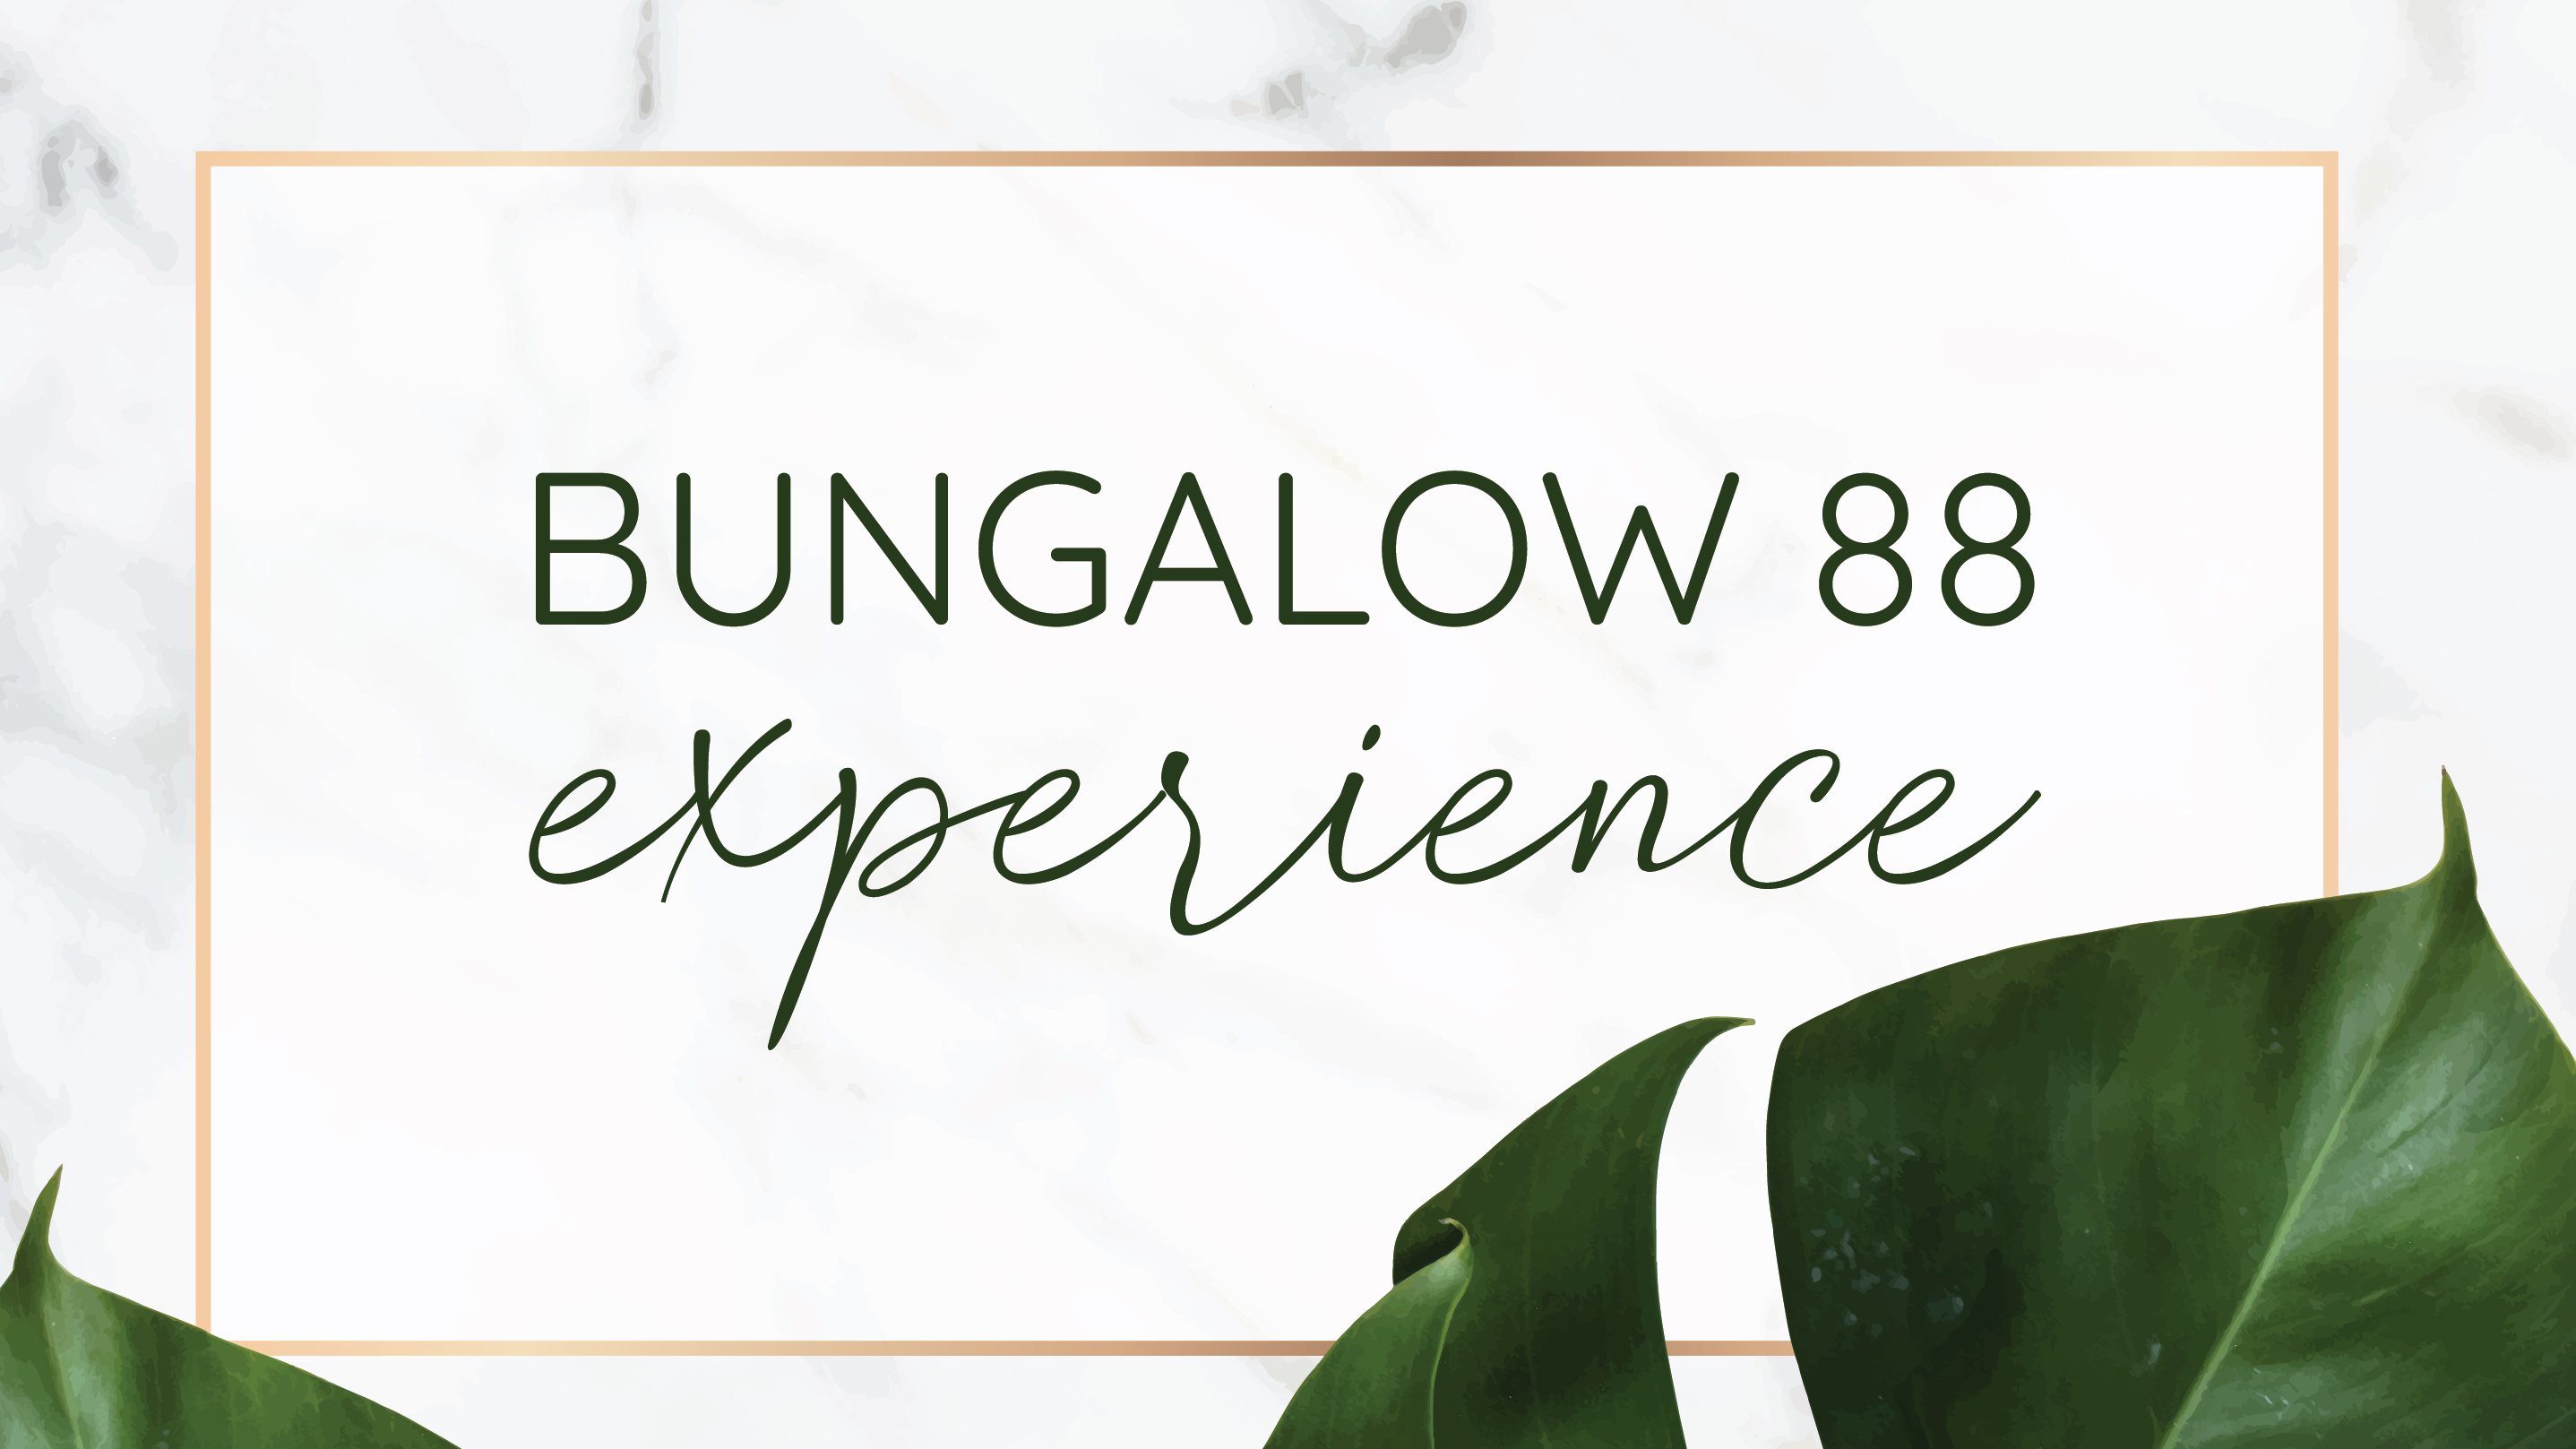 BUNGALOW 88 Experience